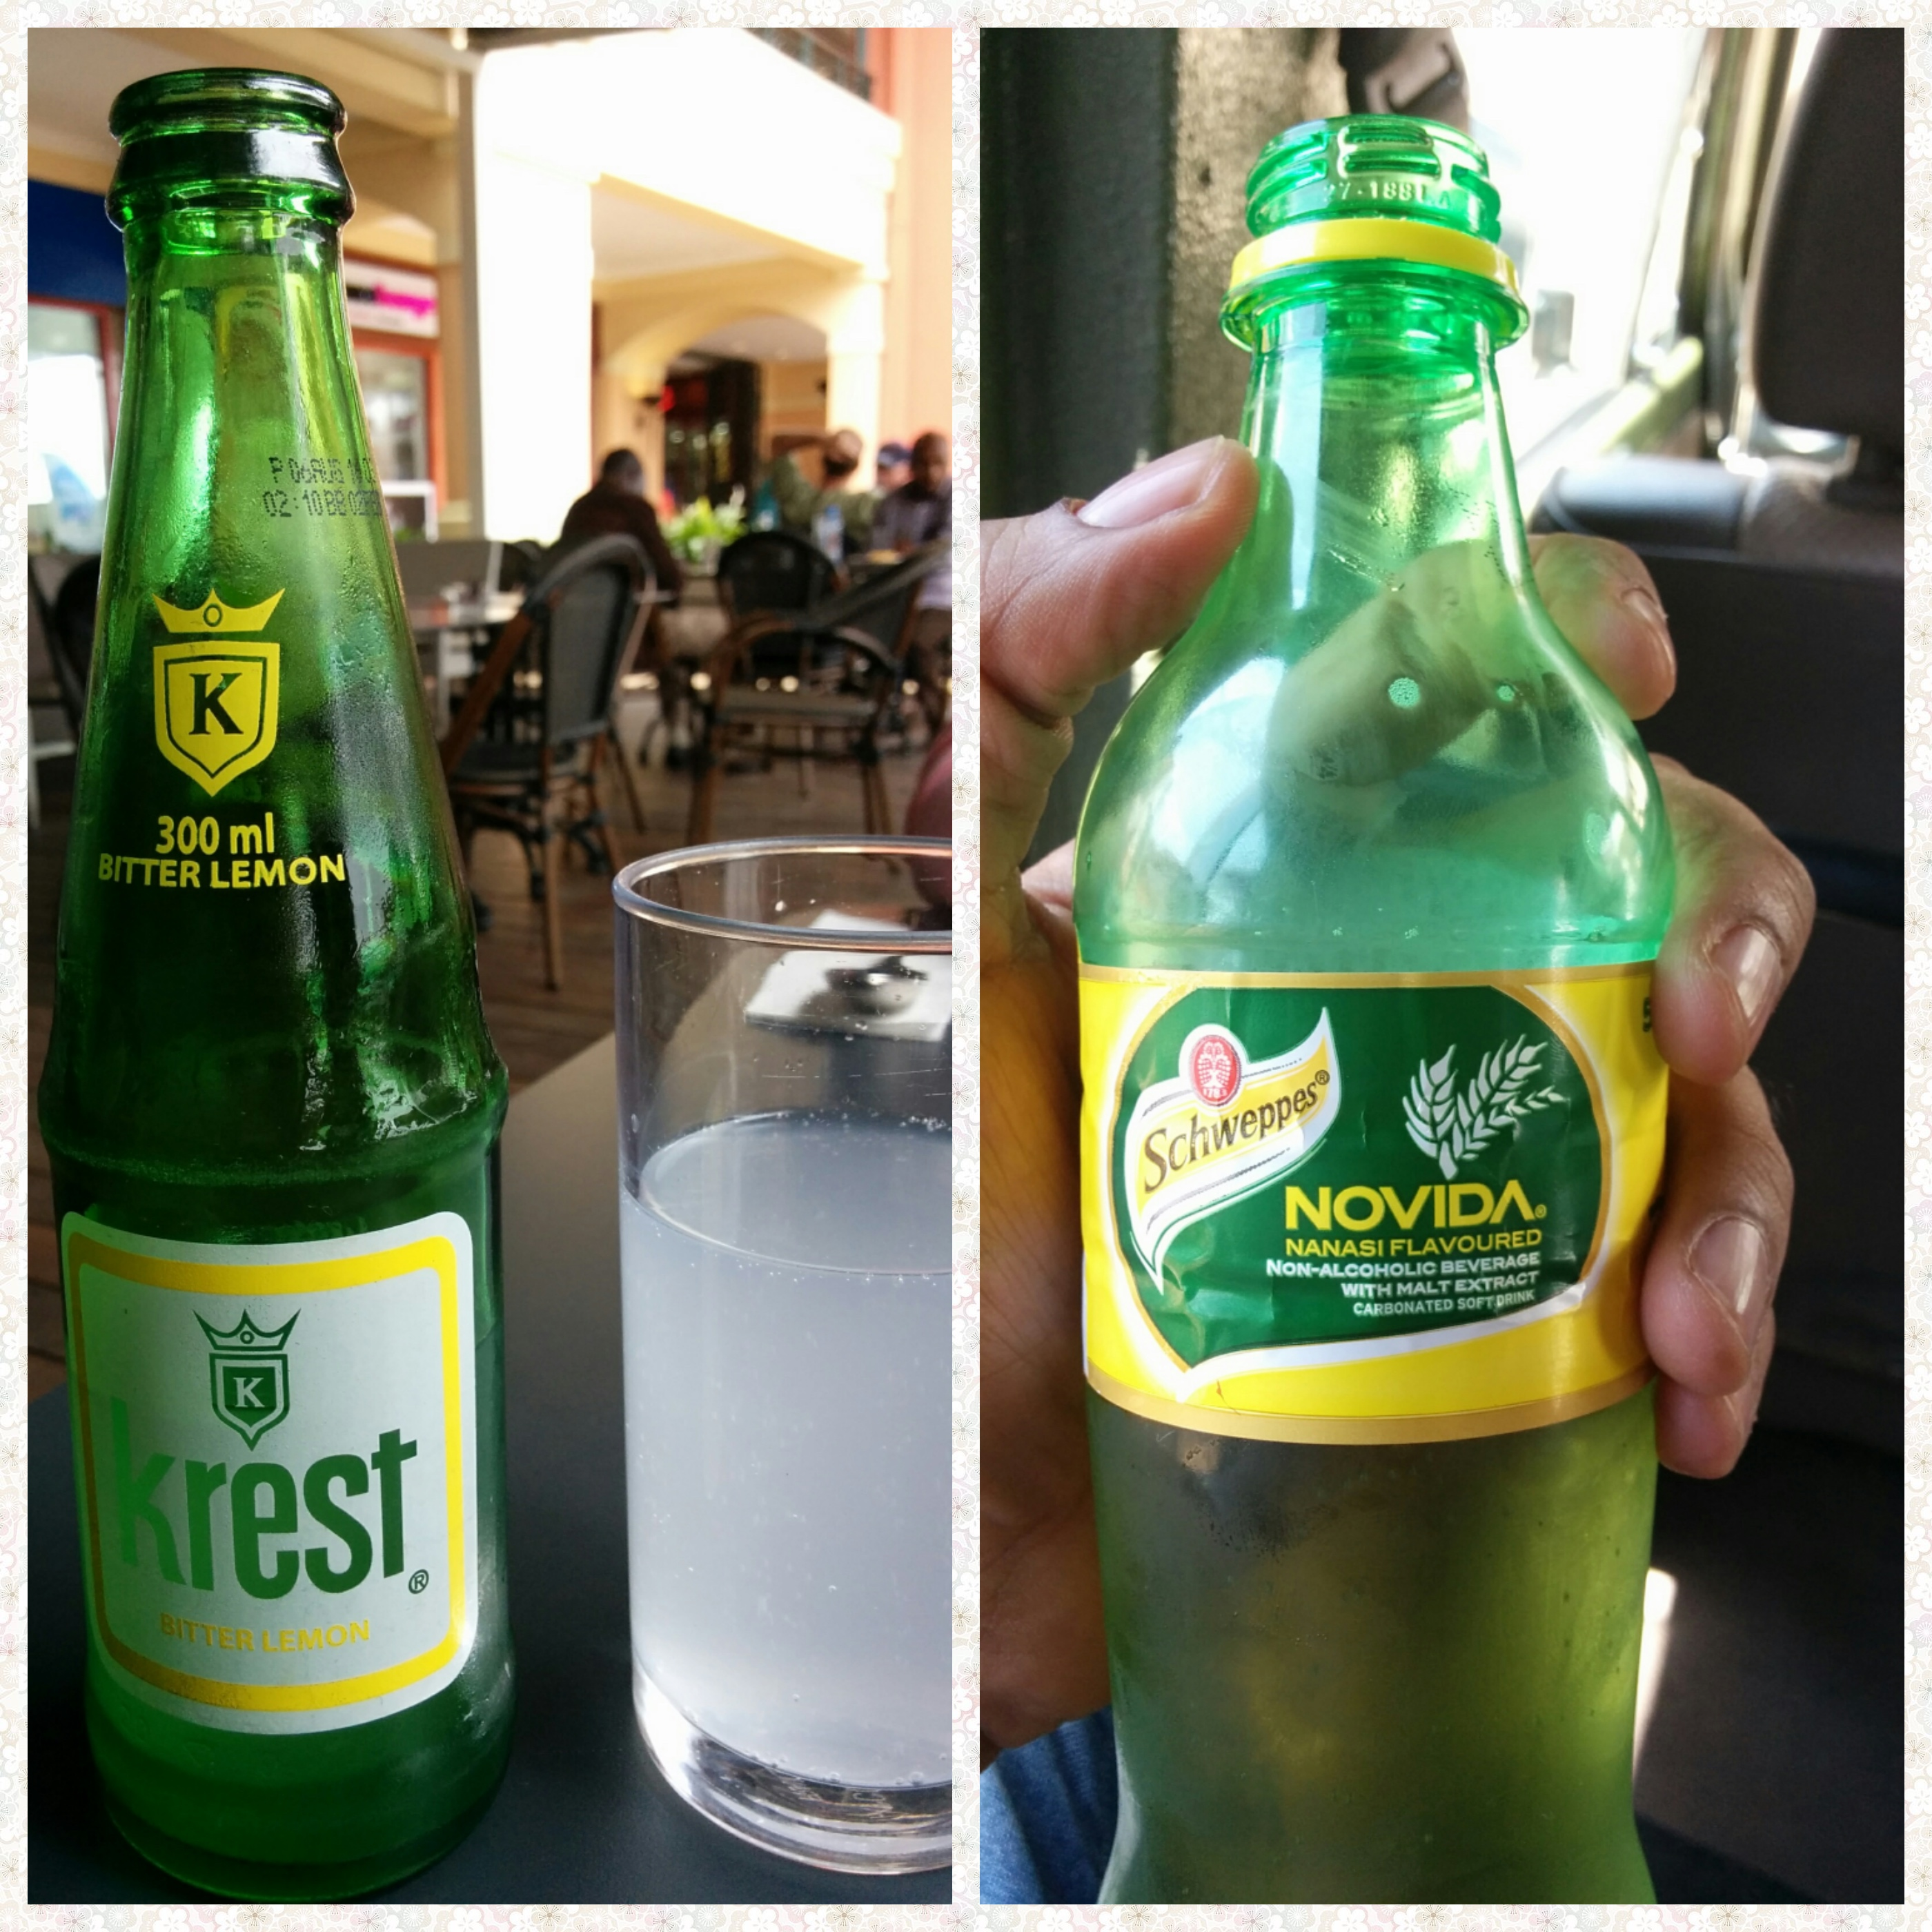 A bottle of Krest Bitter lemon and a bottle of Schweppes pineapple drink